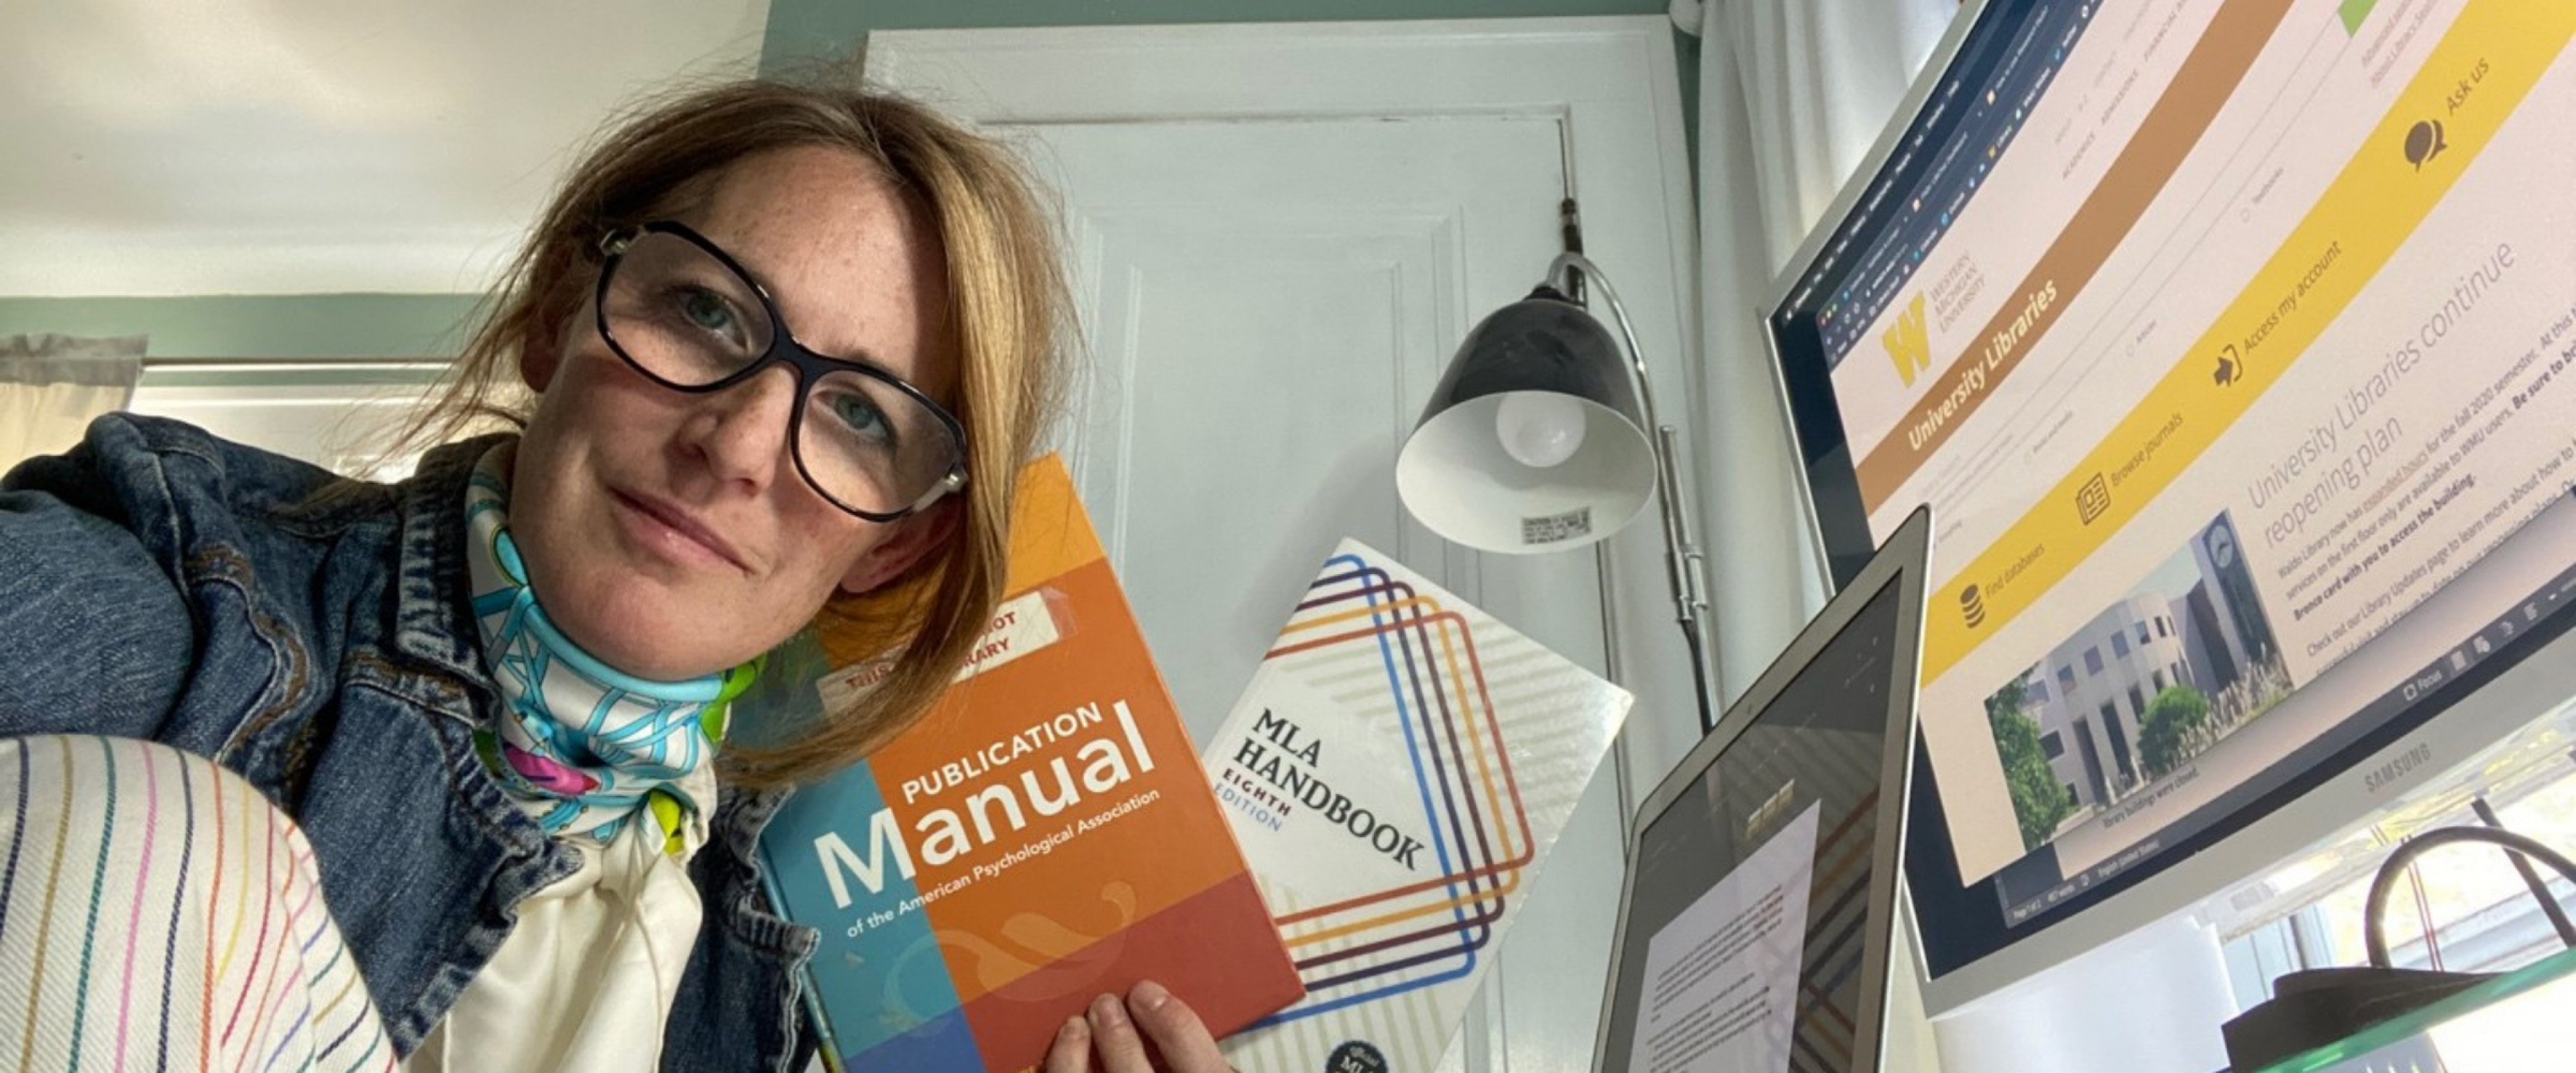 Kate Langan holding the MLA and APA style guides in her home office.